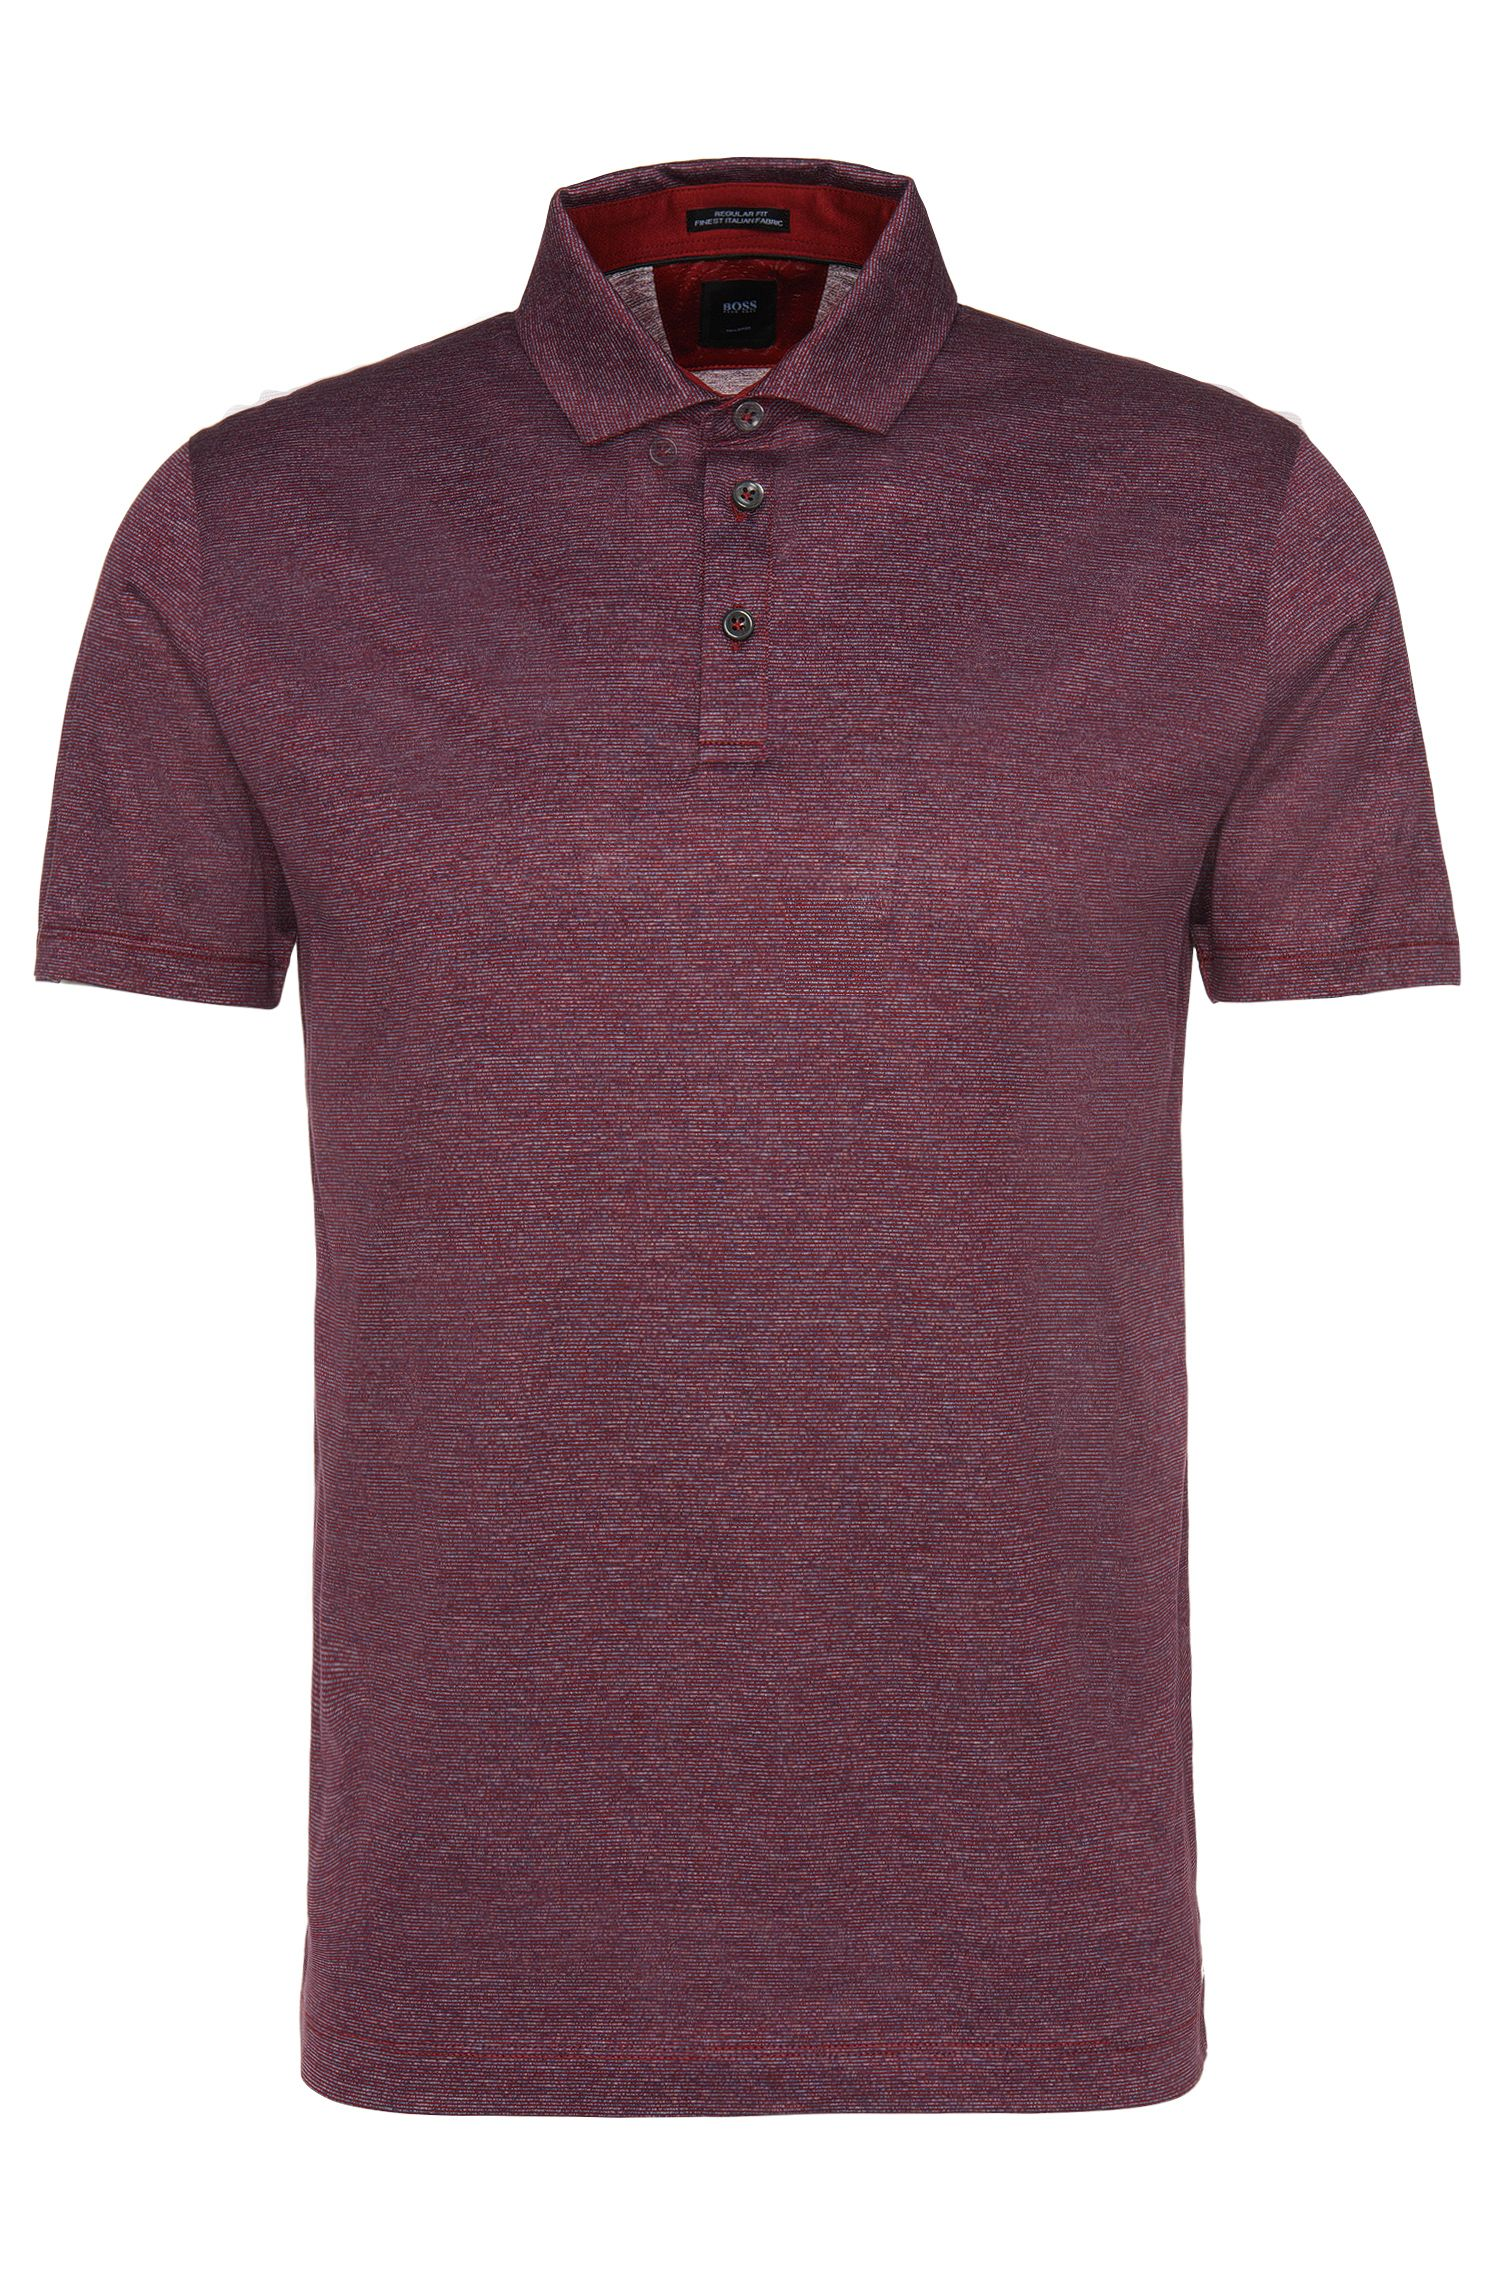 Regular-Fit Tailored Poloshirt aus Baumwolle: 'T-Perkins 06'